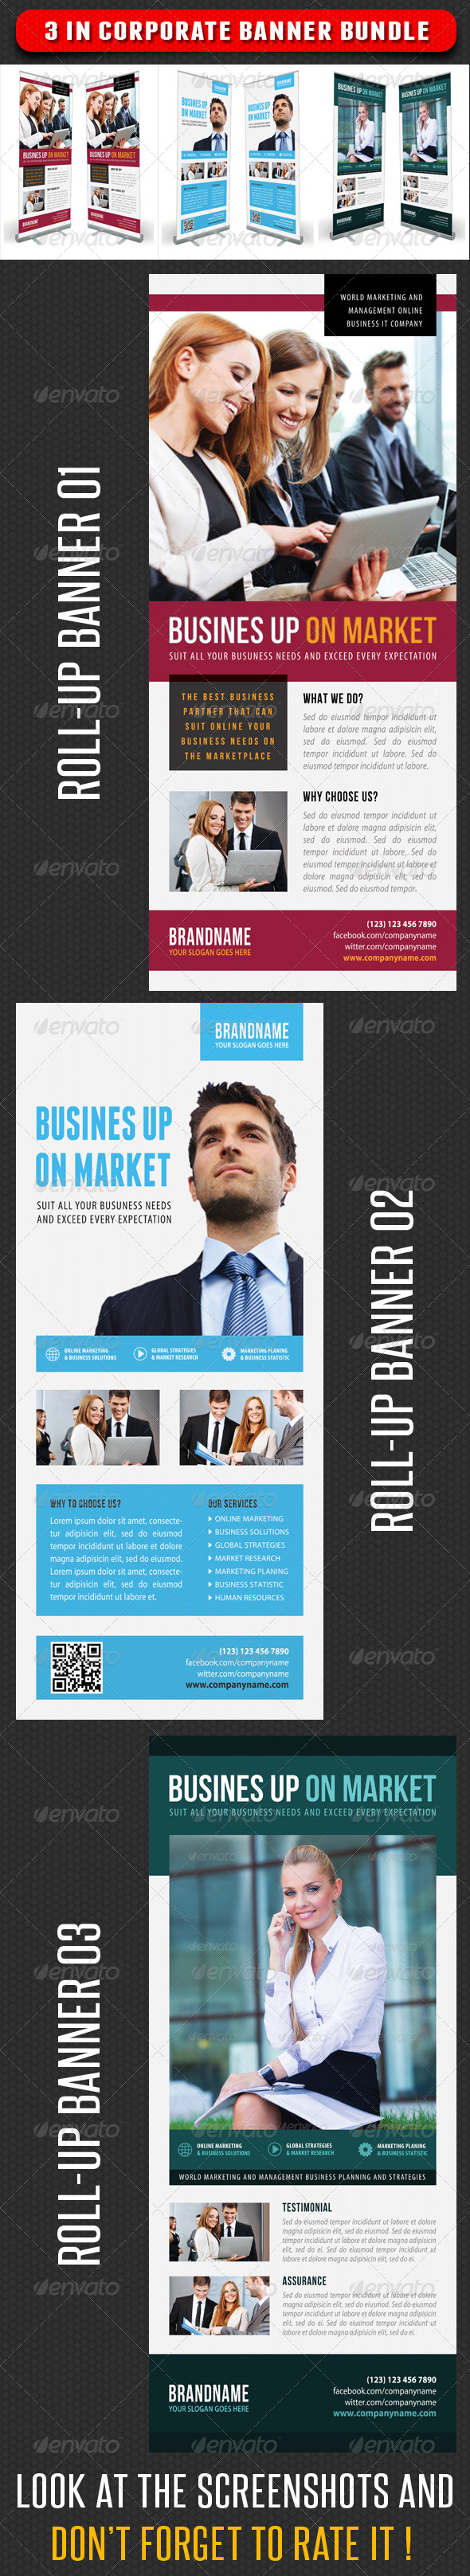 3 in 1 Corporate Rollup Banner Bundle 07 - Signage Print Templates